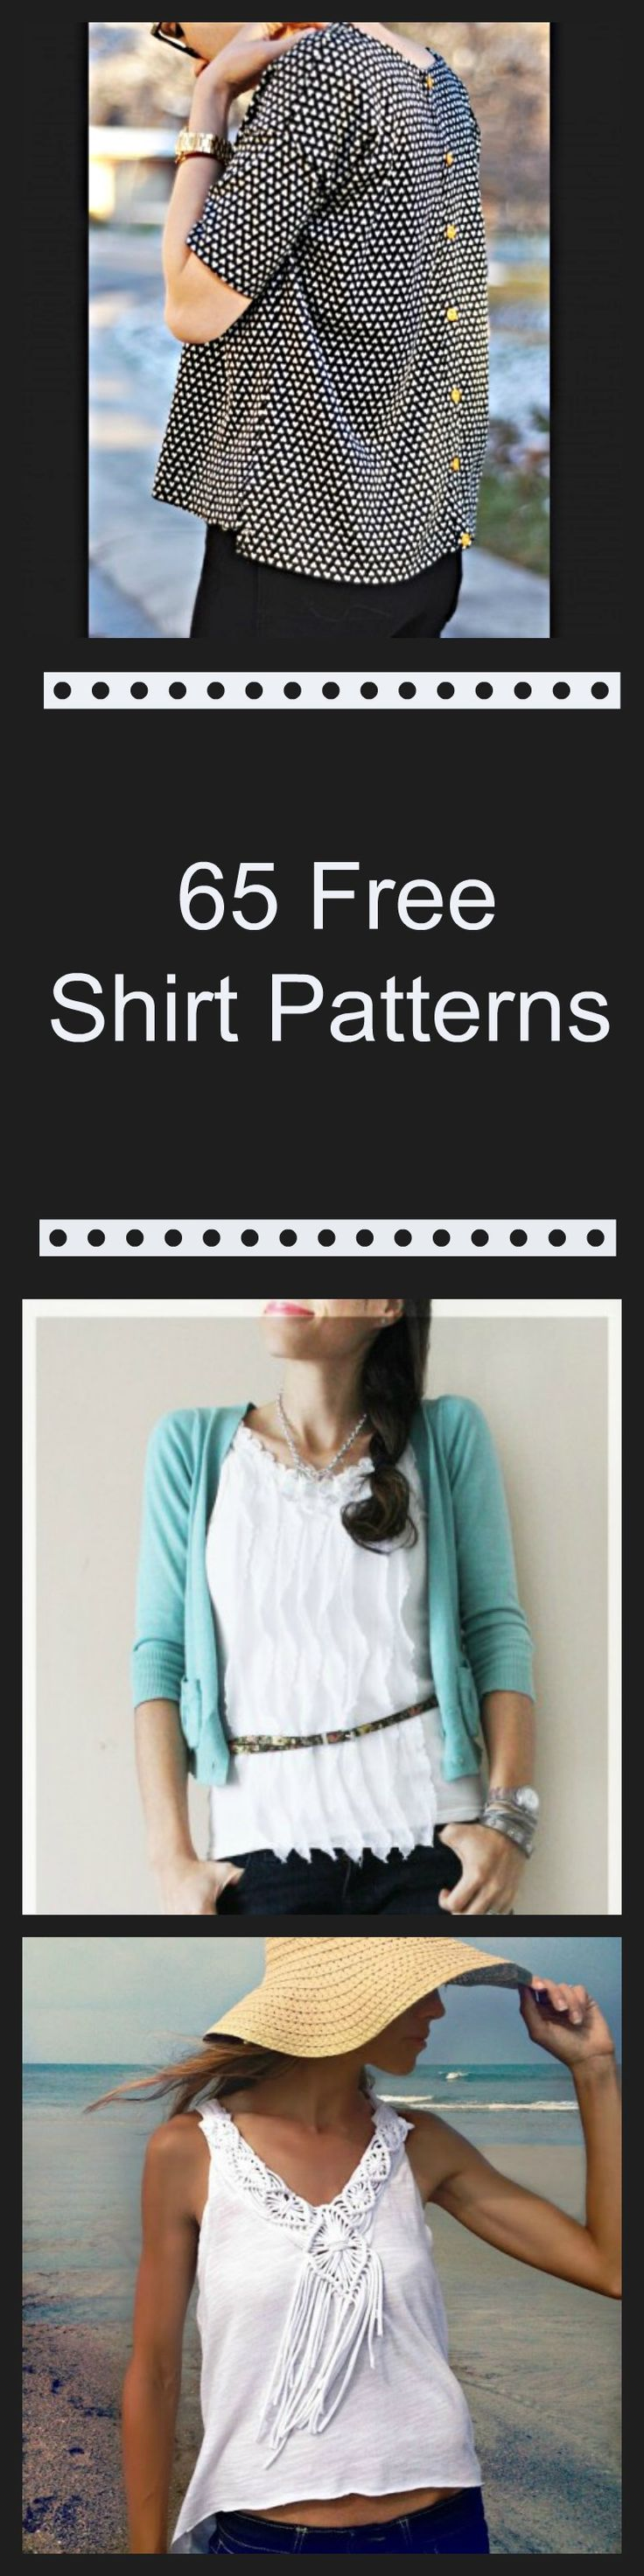 65 Free Shirt Patterns Más